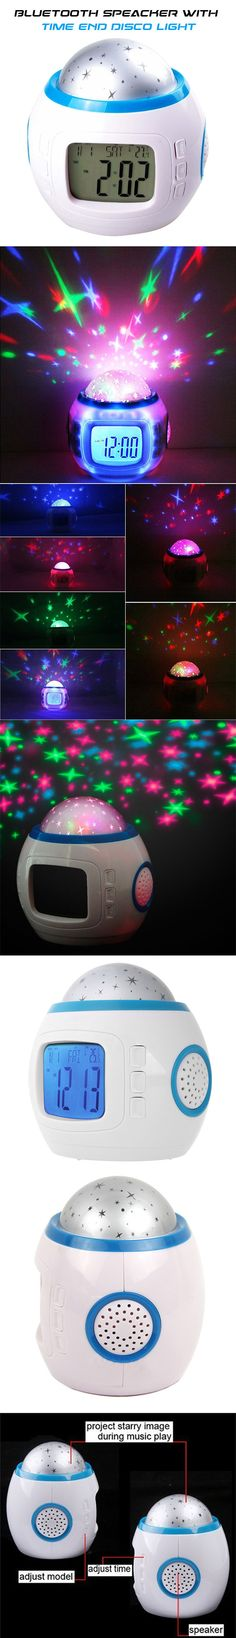 Bluetooth speaker with LED Light, Back light & Time Display at just £4.89 on Xpress Buyer